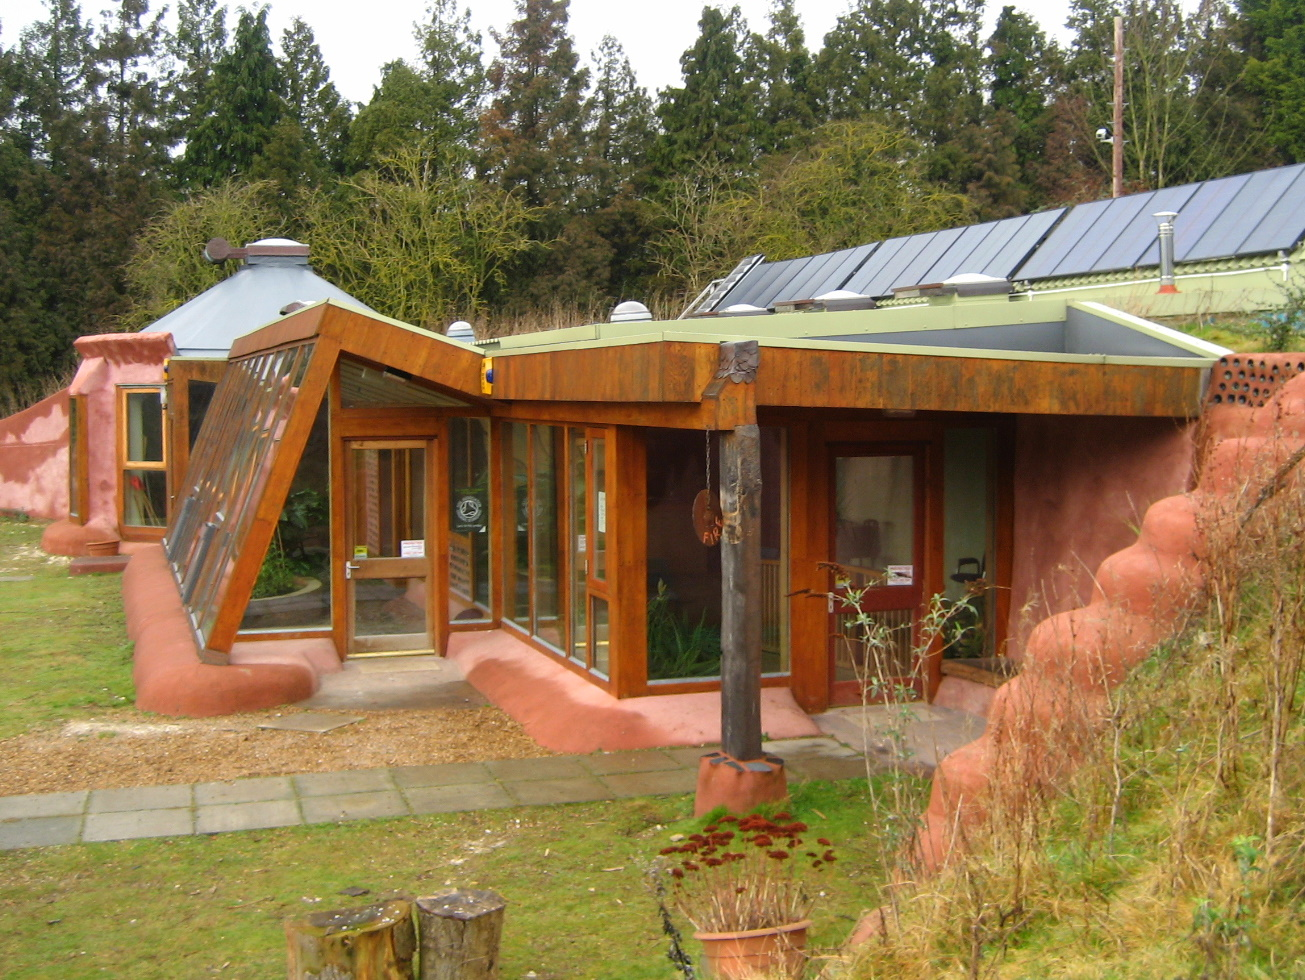 Earthship wikidwelling for Earth house plans